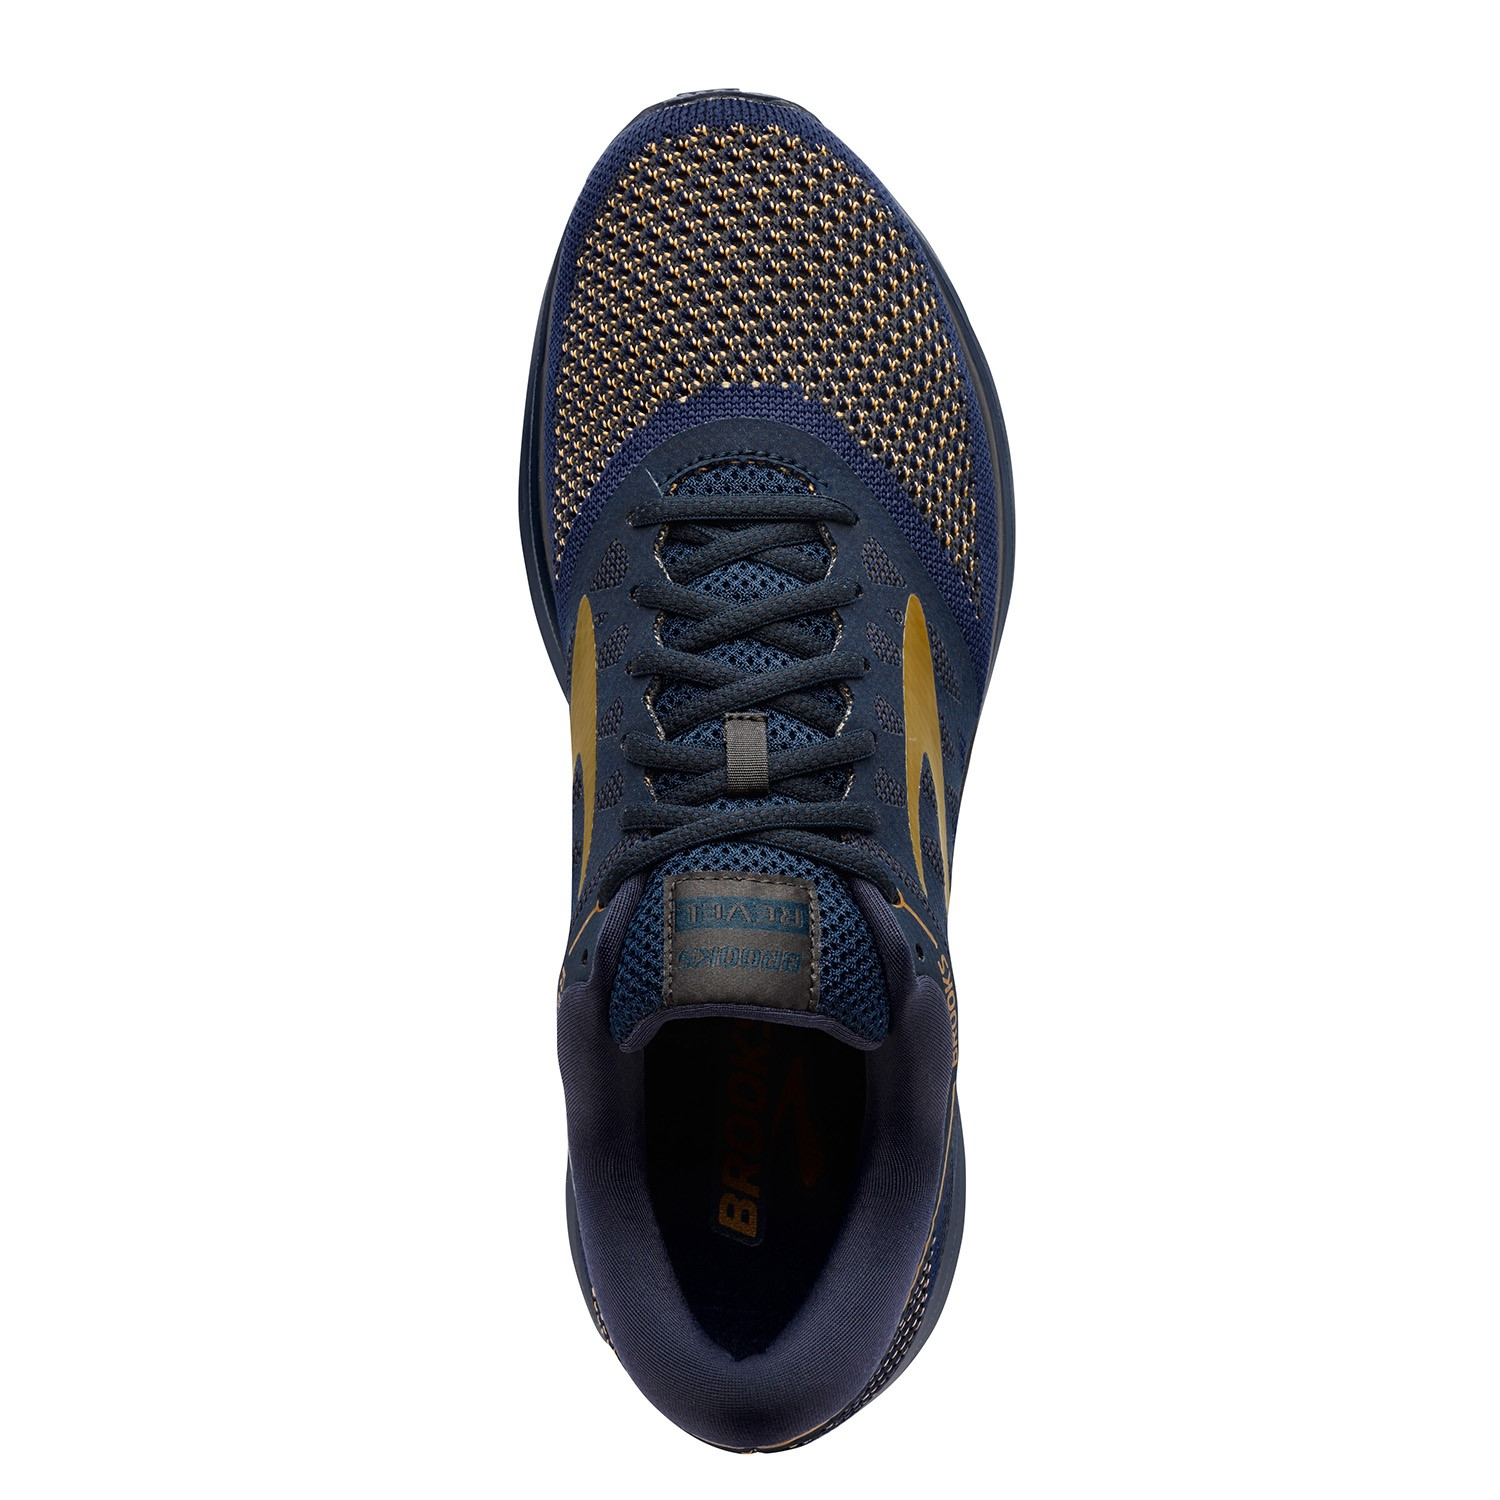 6f61d60bde367 Brooks Revel - Mens Running Shoes - Navy Gold Black